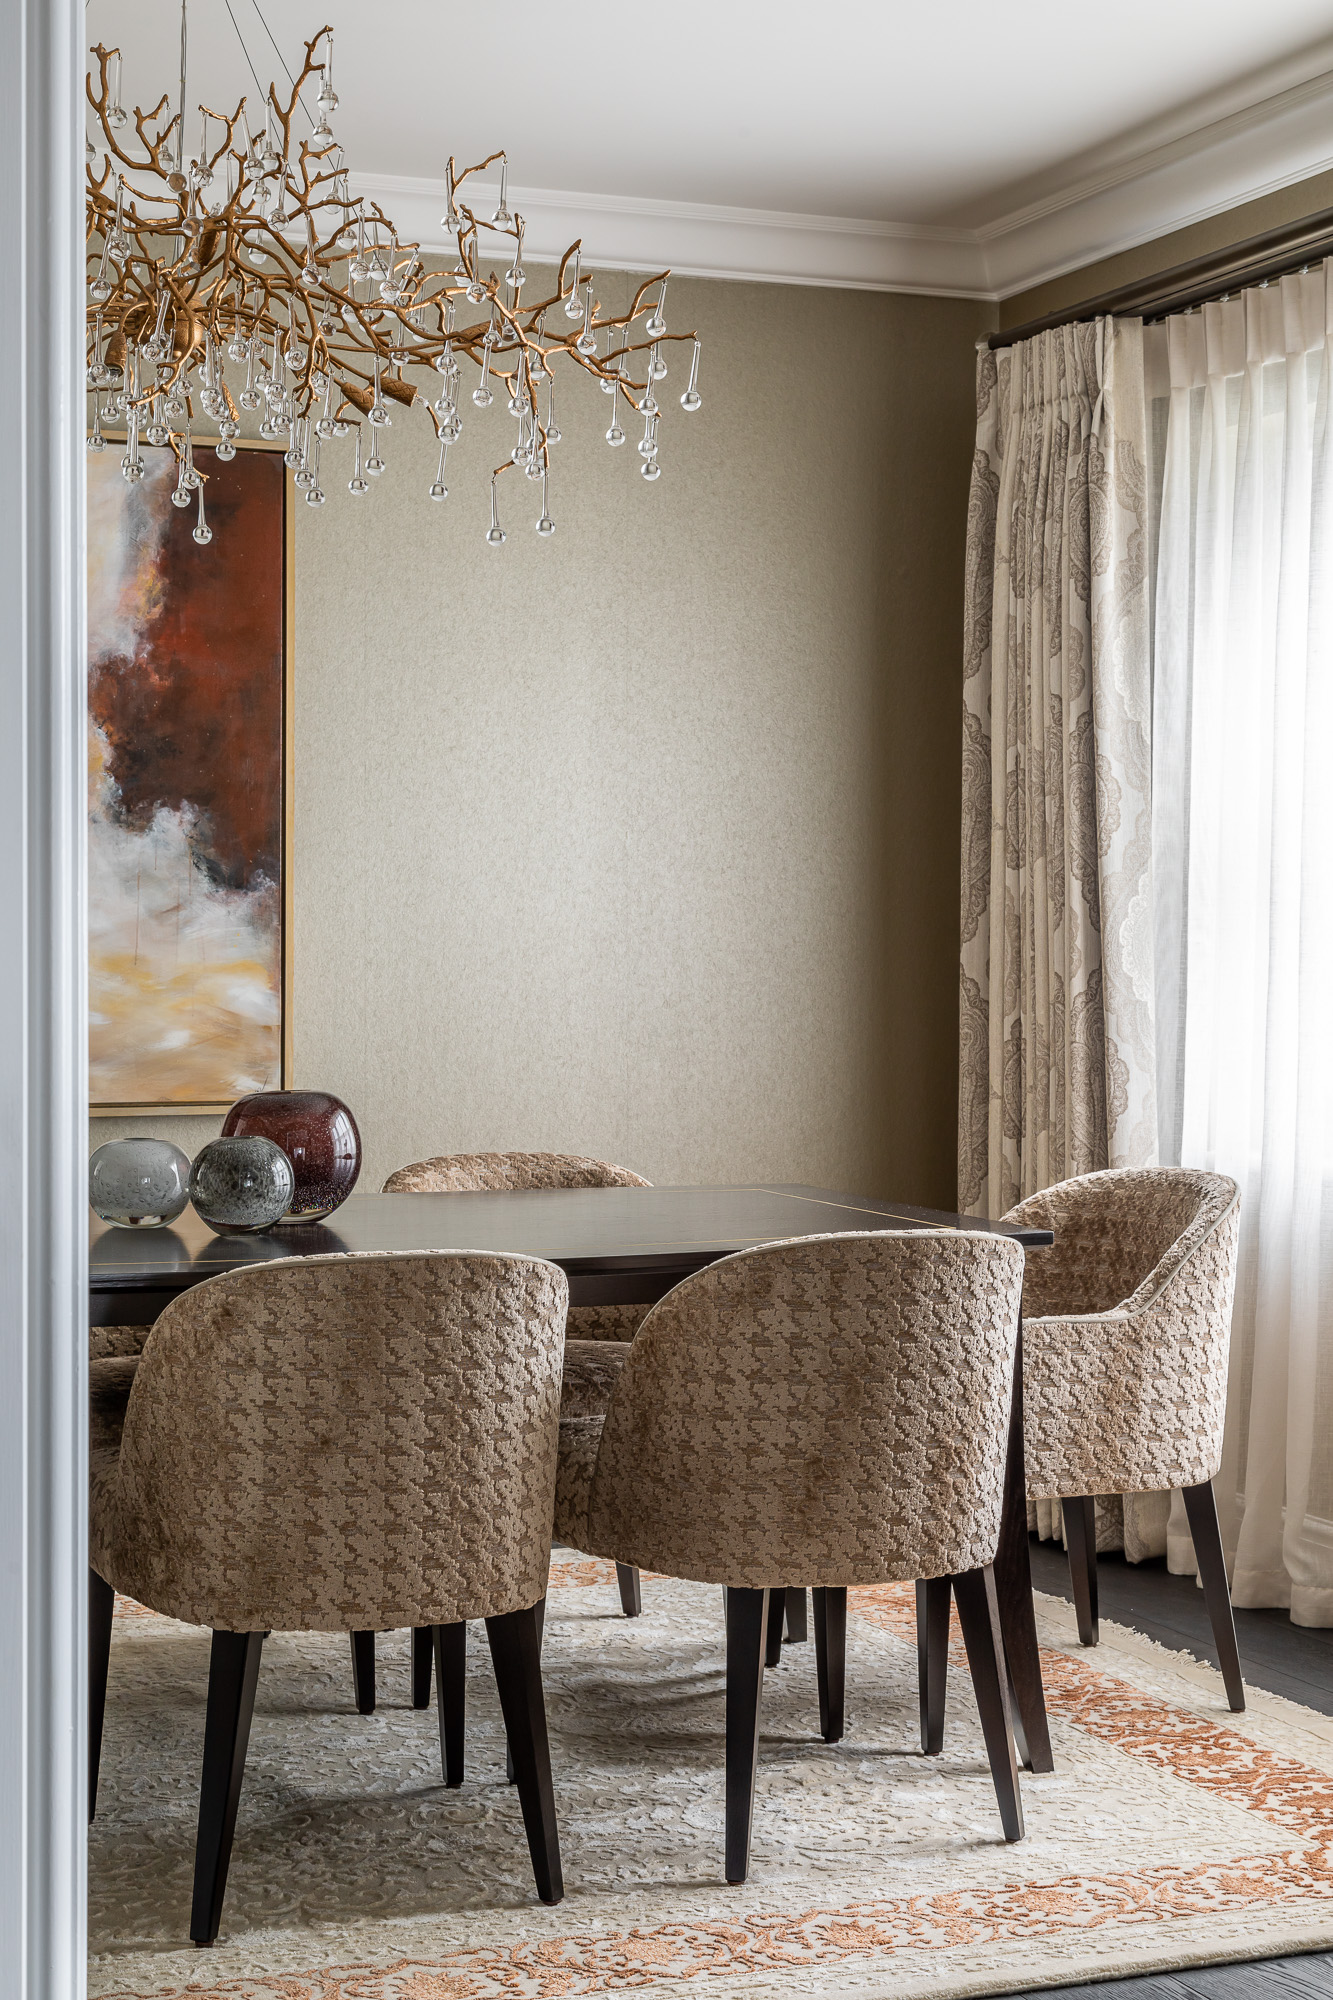 jonathan bond, interior photographer, dining room table & chairs, esher, surrey